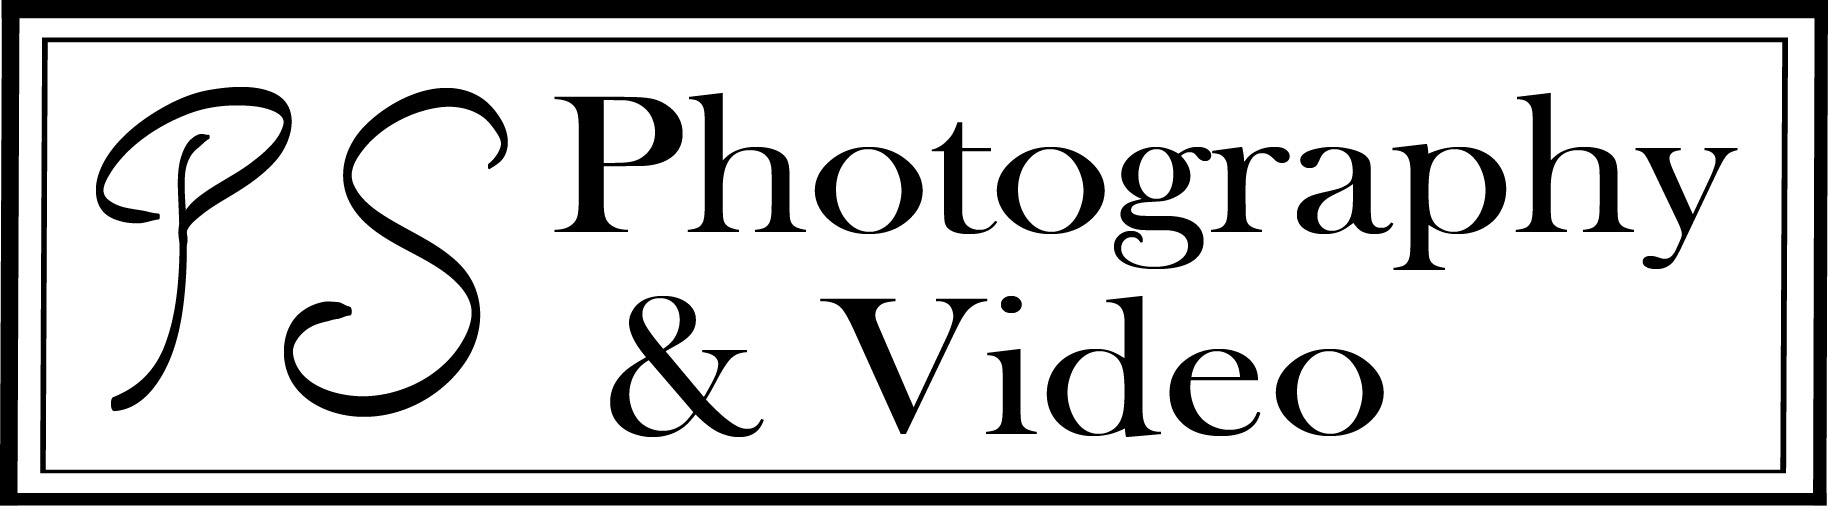 PS Photography & Video